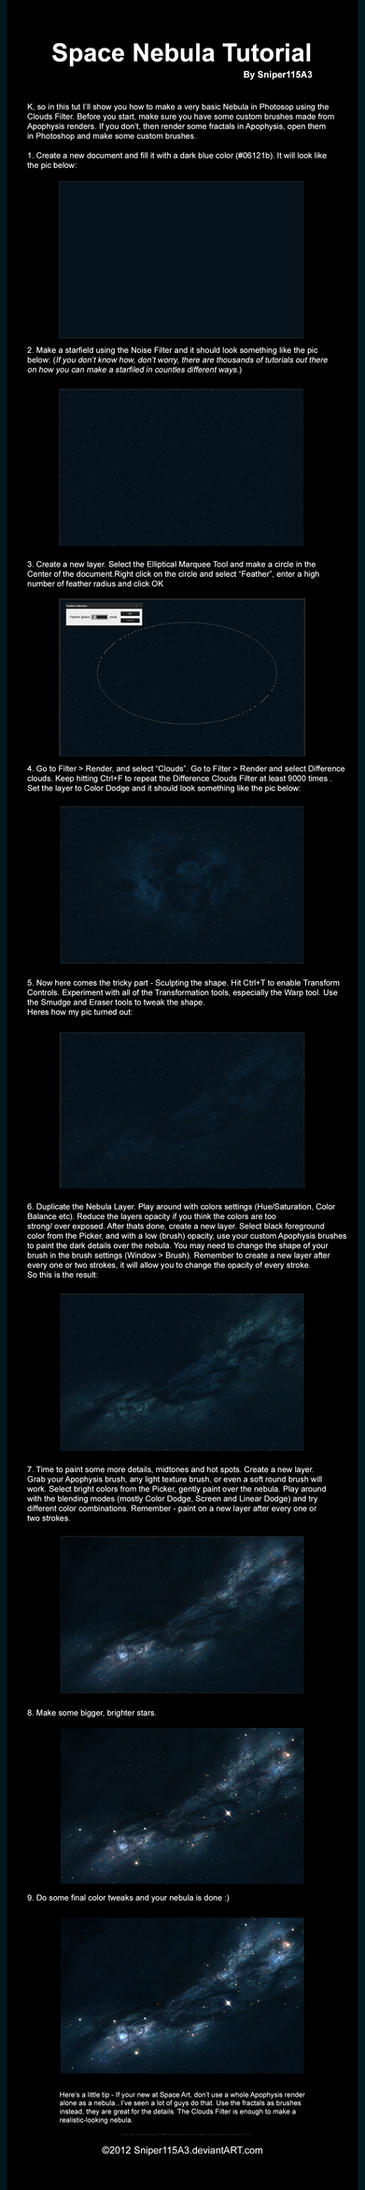 space nebula tutorial by sniper115a3 on deviantart